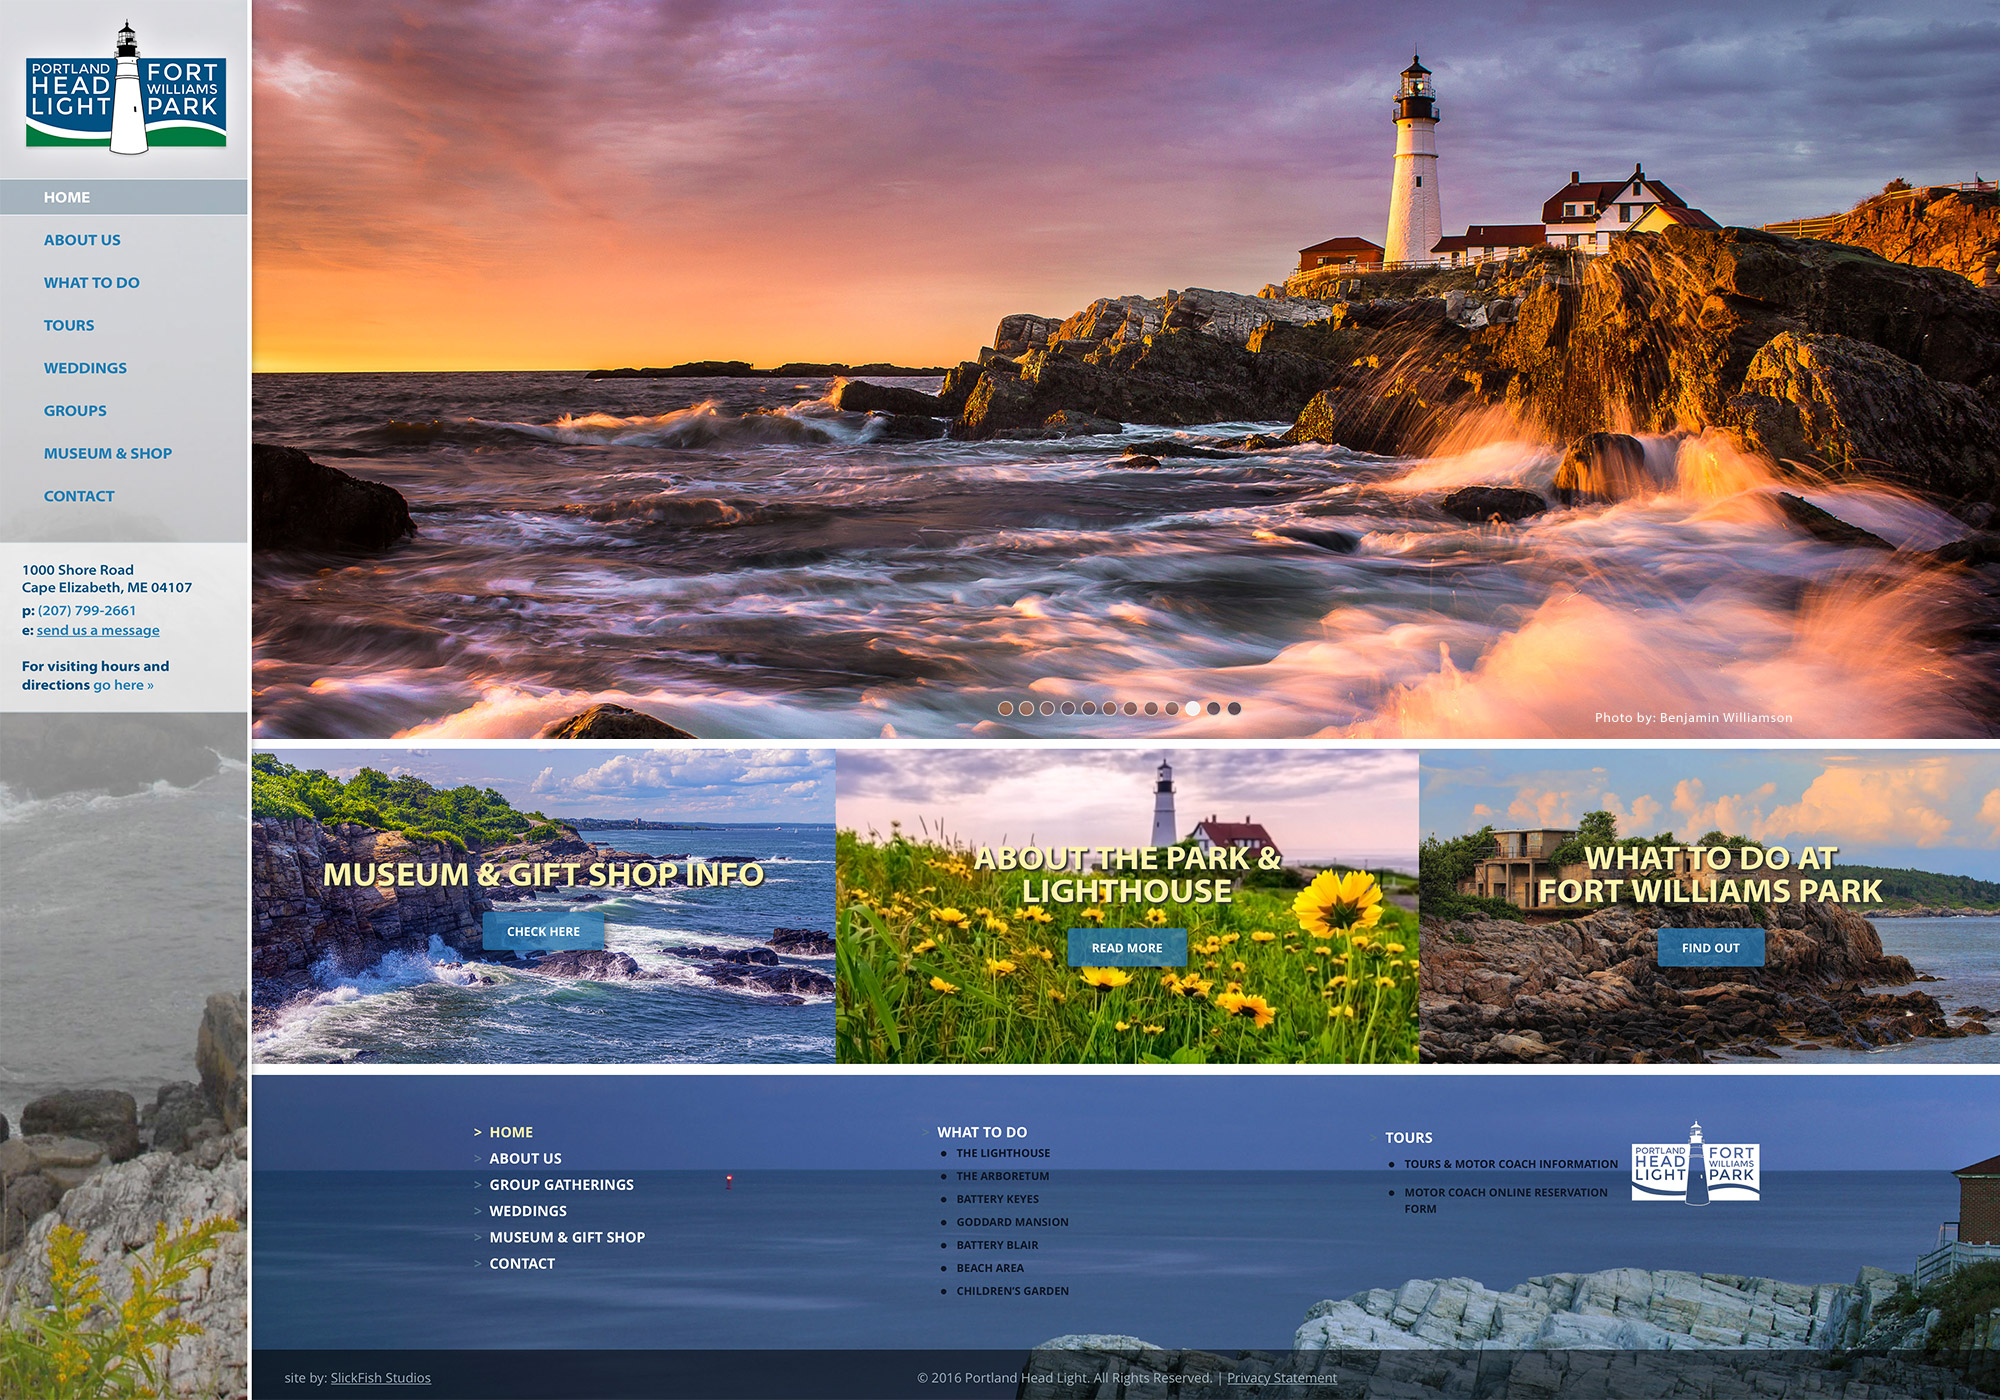 A screenshot of the SlickFish Studios designed and developed website for the Portland Head Light and Fort Williams Park.